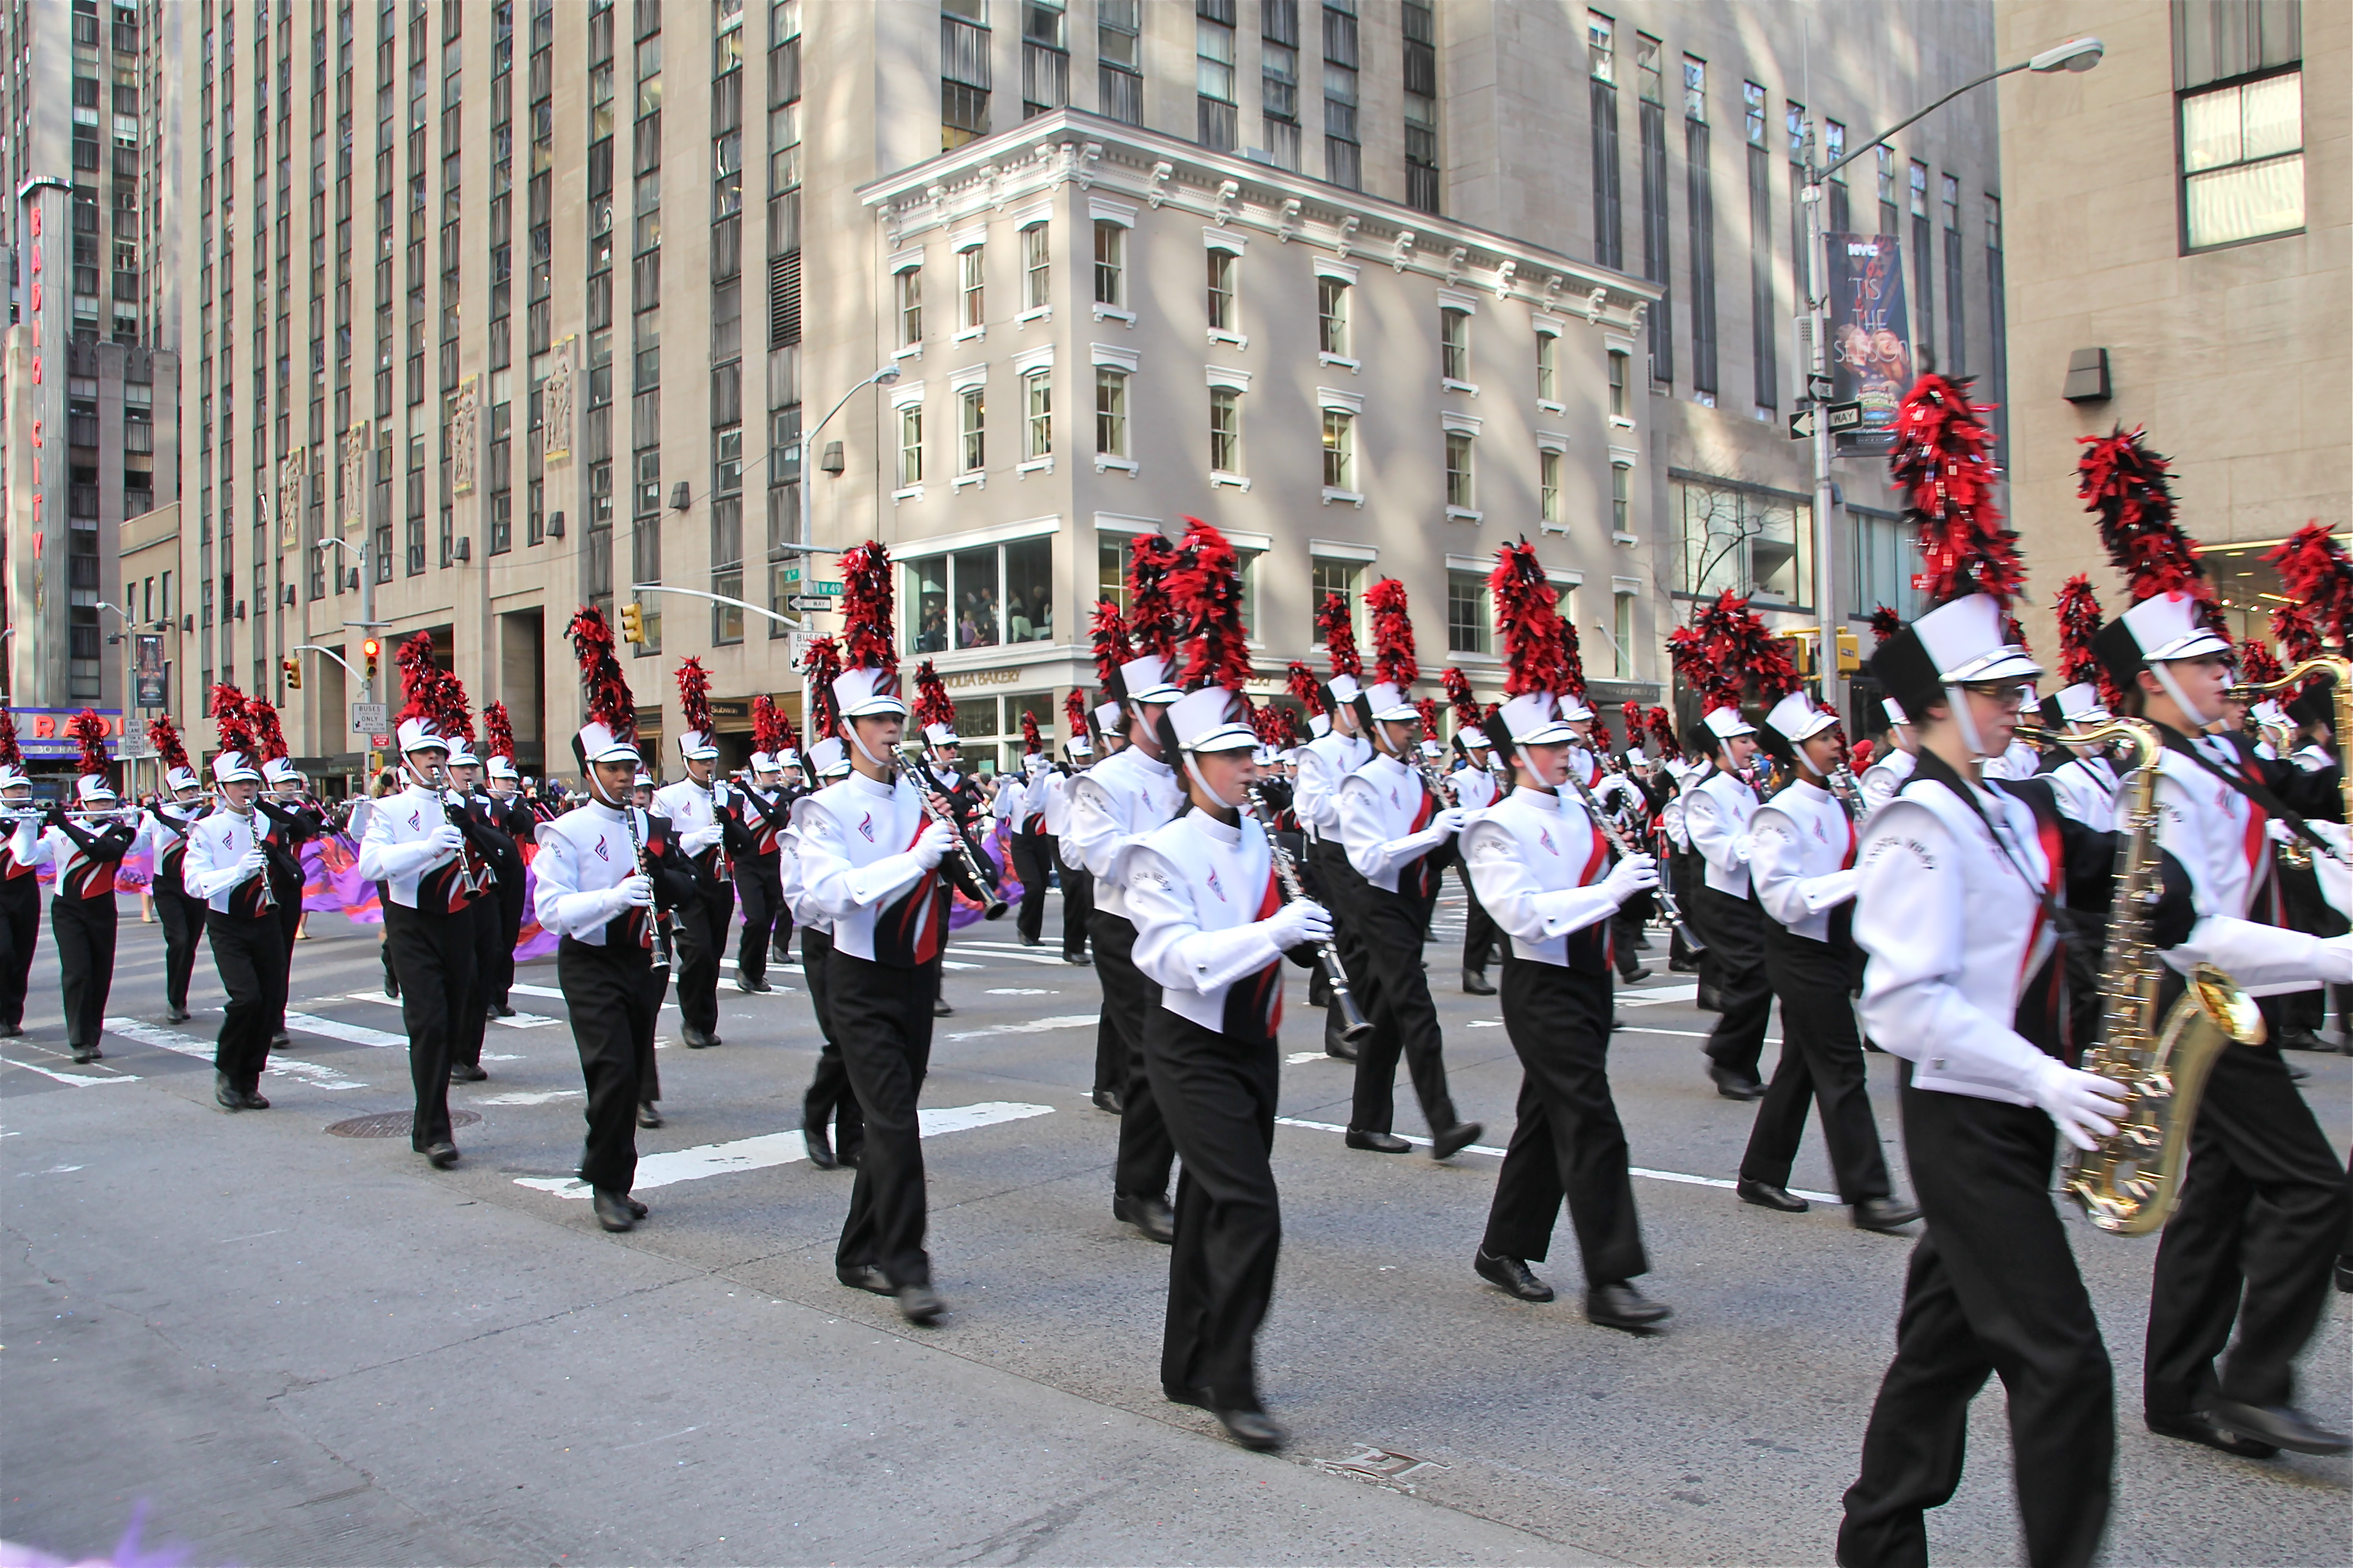 Thanksgiving Day parade in New York City. Photograph taken on November 28, 2013.